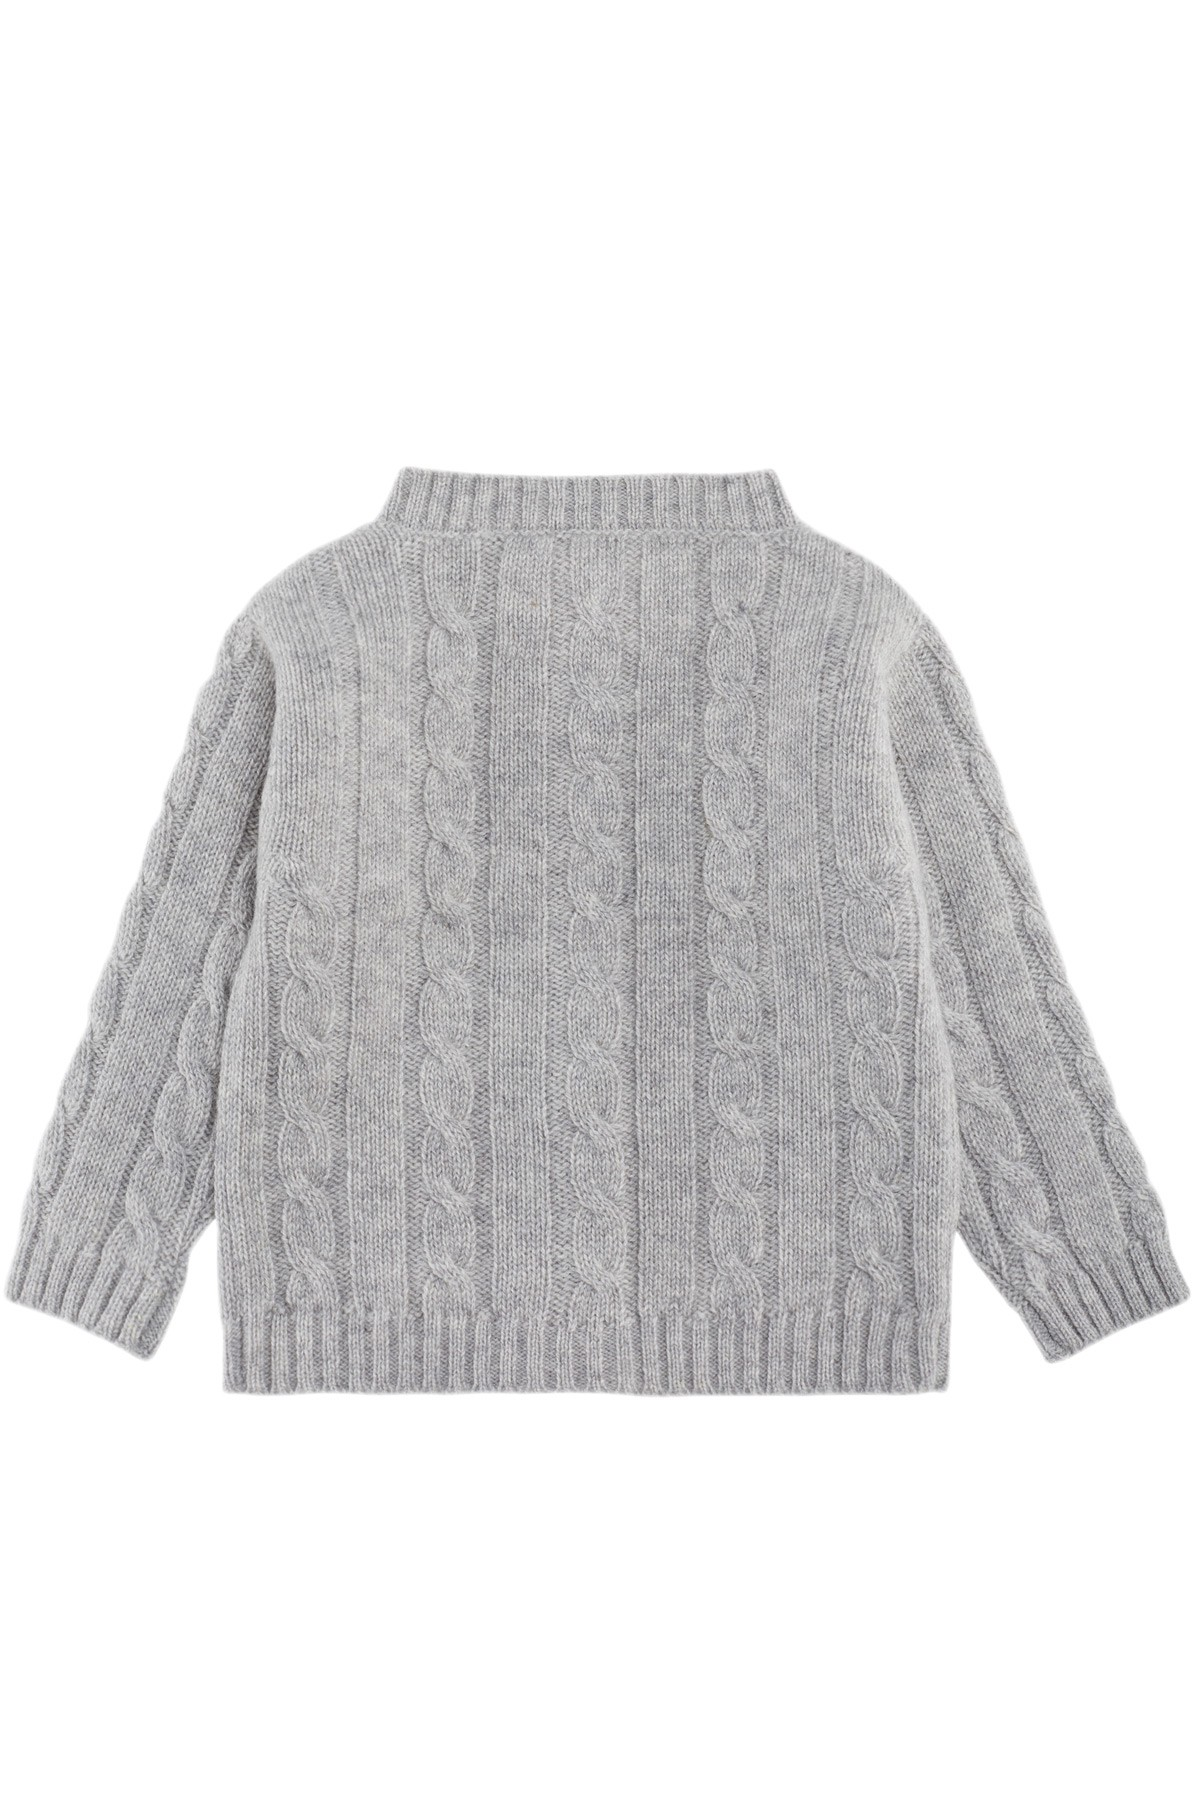 Cable knit cashmere jacket for babies oyster gray